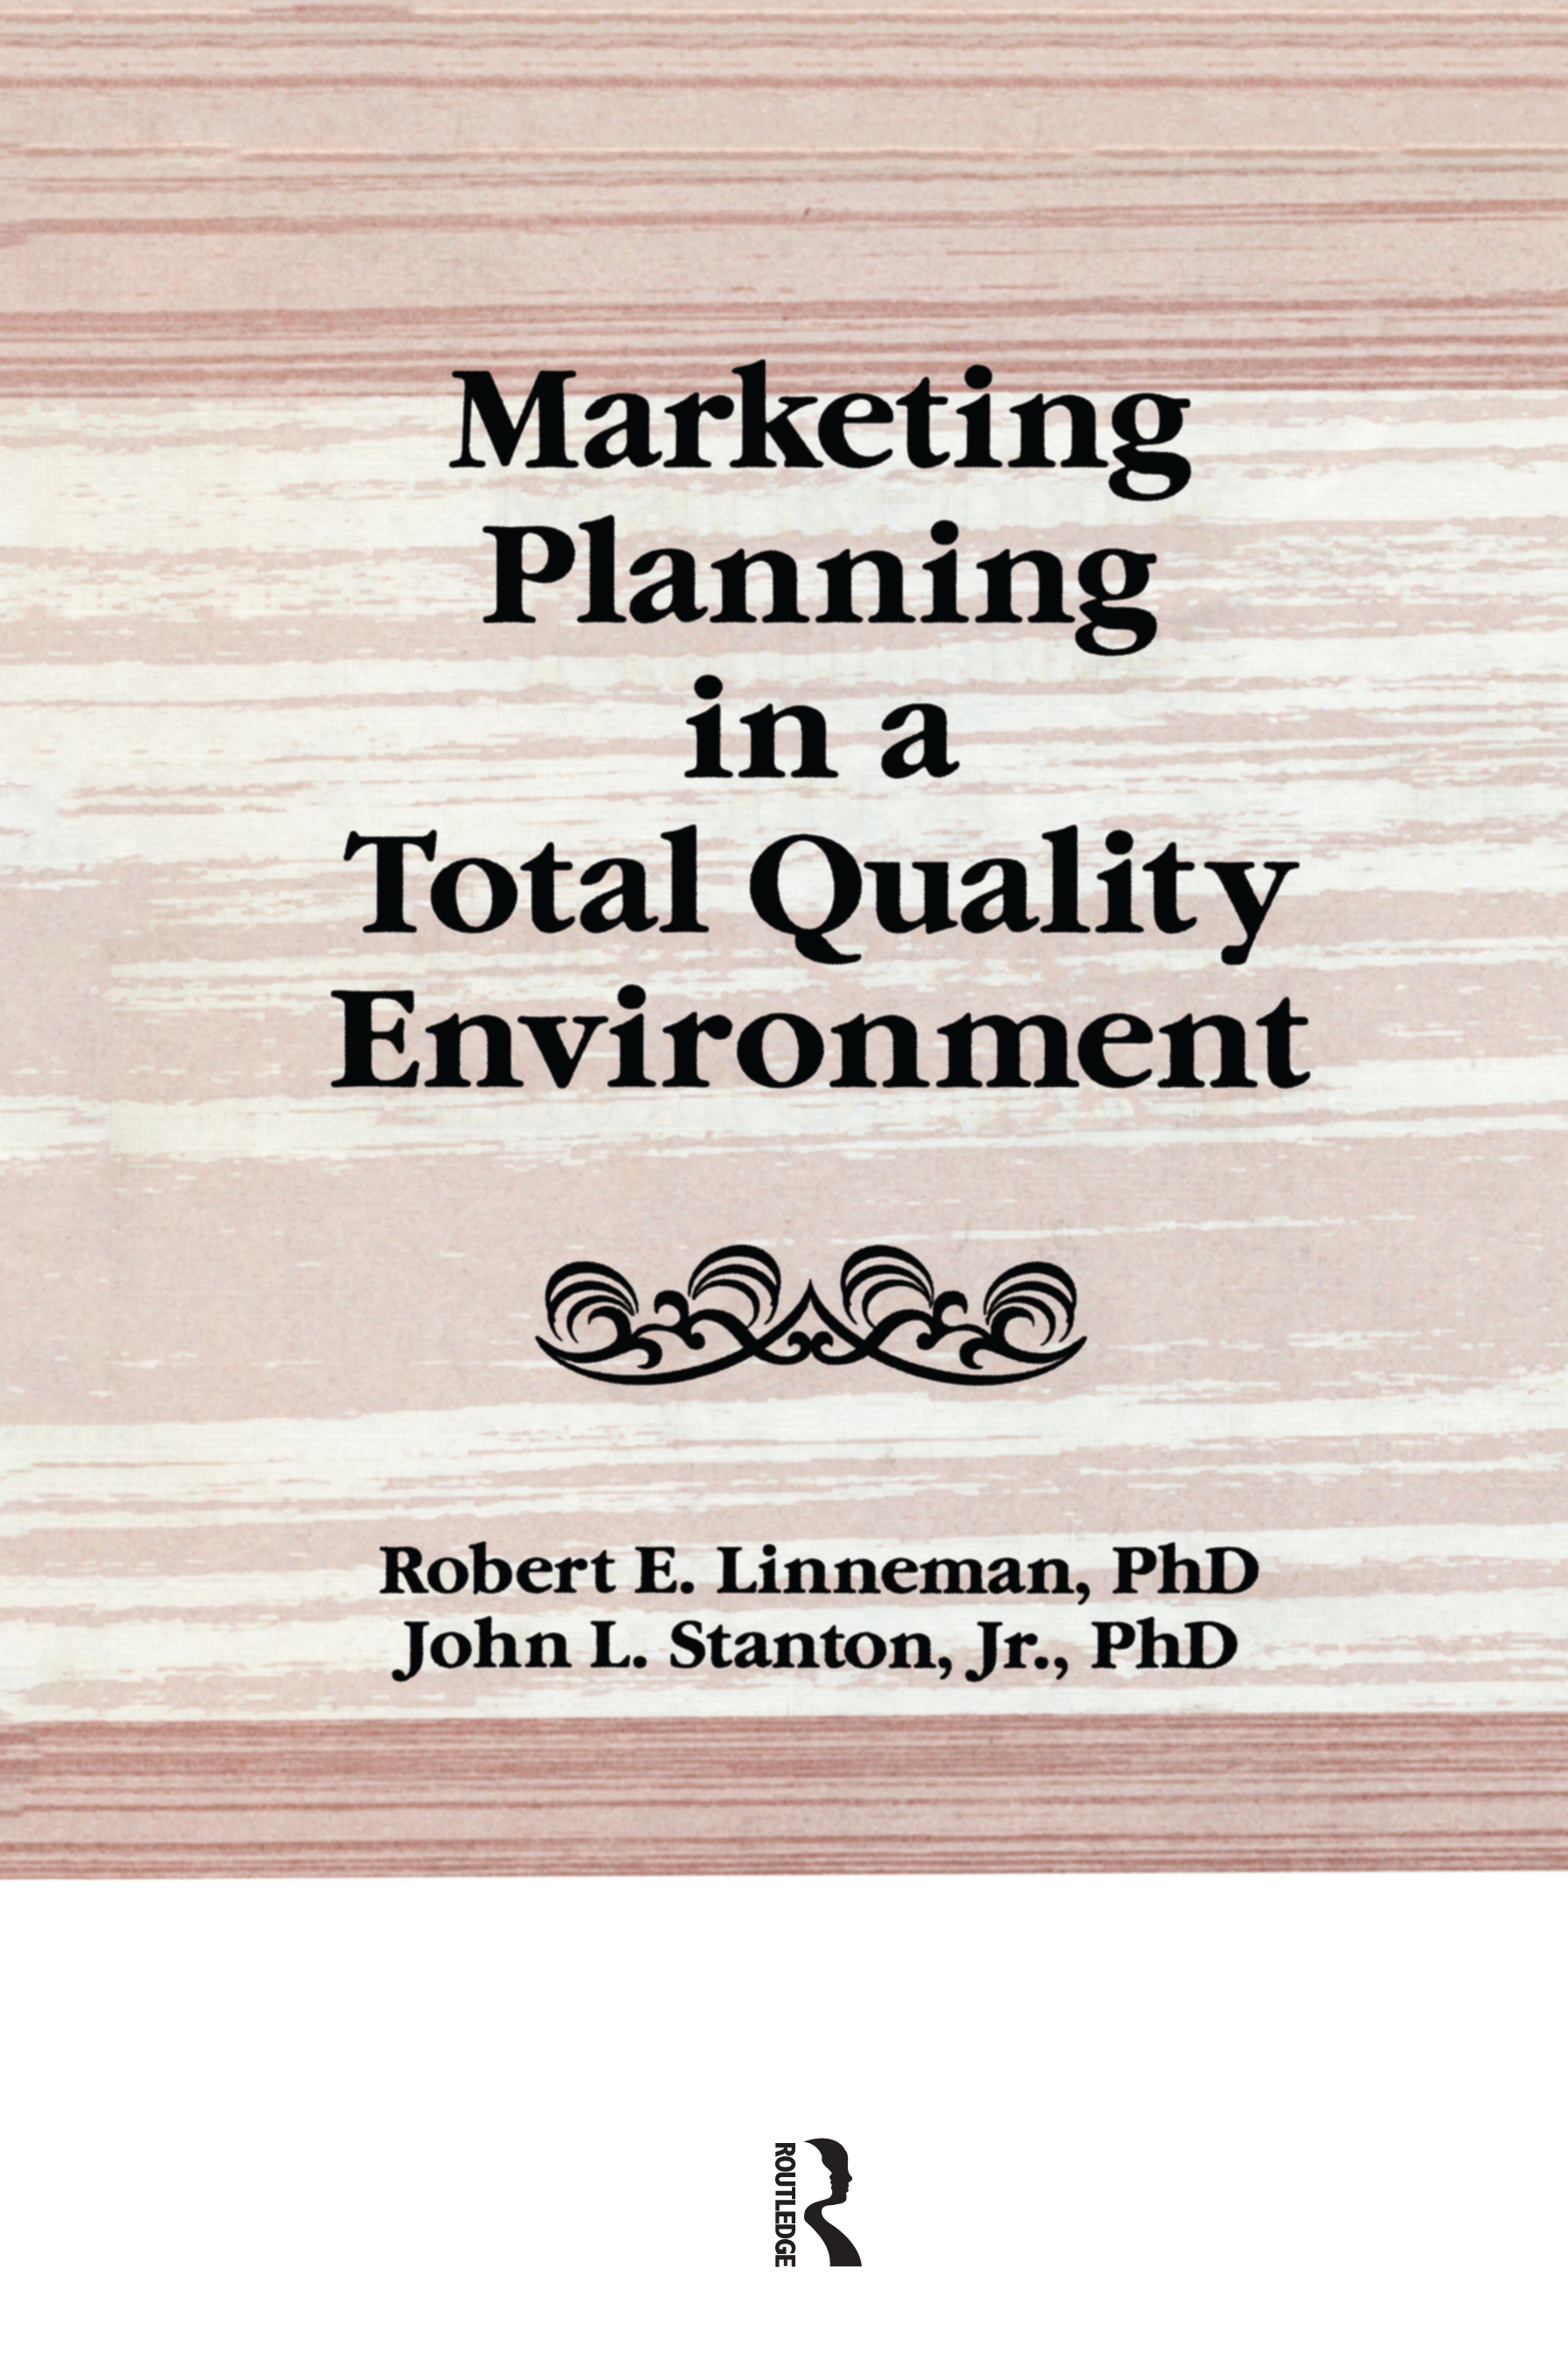 Marketing Planning in a Total Quality Environment book cover